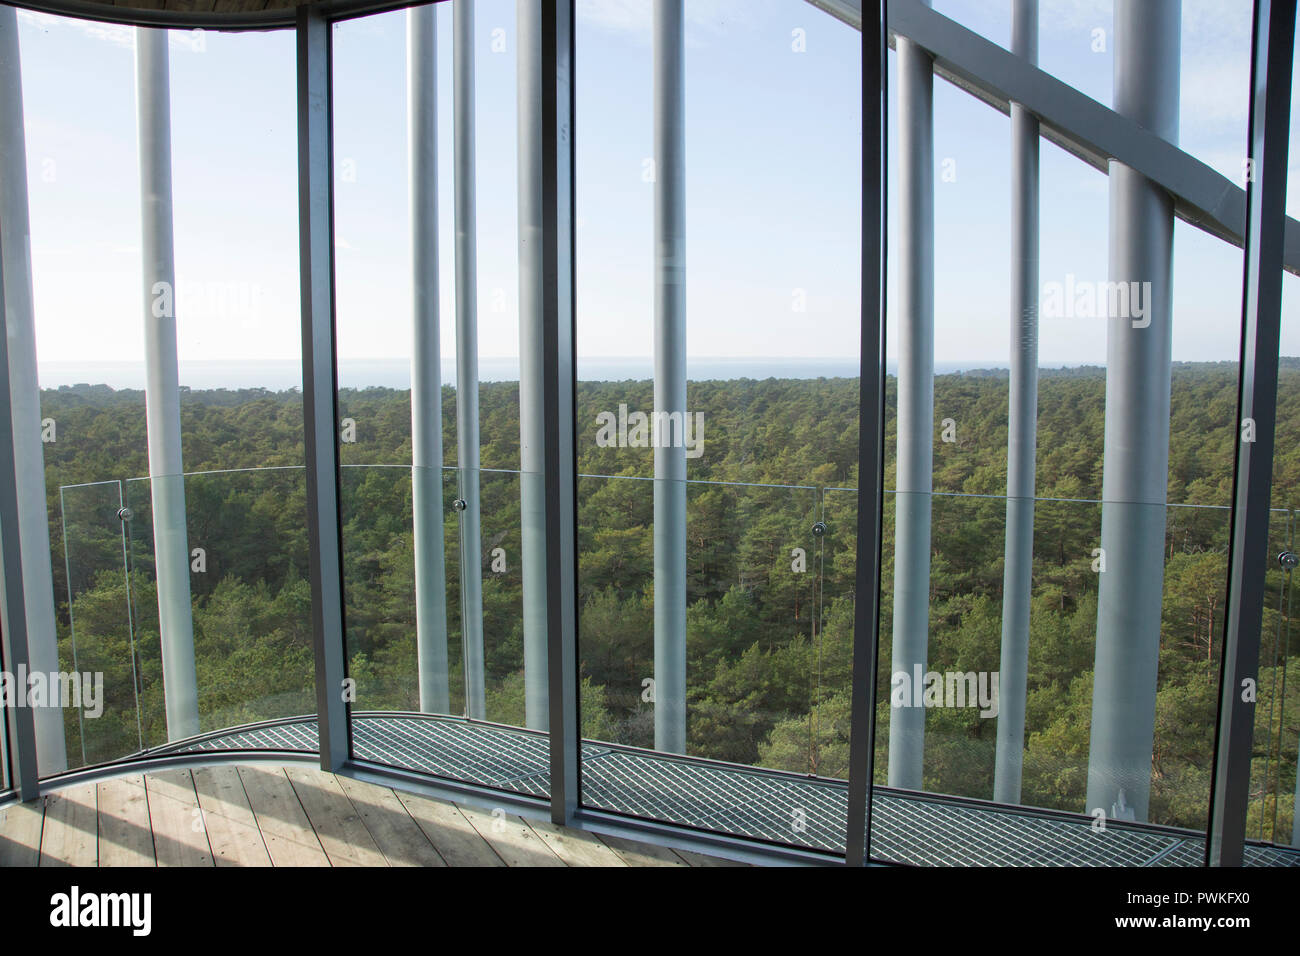 12 October 2018, Estonia, Laulasmaa: View from the 32 metre high viewing platform of the Arvo Pärt Centre. The archive, a concert hall with 150 seats, a library, reading and seminar rooms and exhibition areas are located in the light-flooded new building in a pine forest near the Baltic Sea. (to dpa 'New Centre for Composer Arvo Pärt in Estonia' from 17.10.2018) Photo: Alexander Welscher/dpa - Stock Image